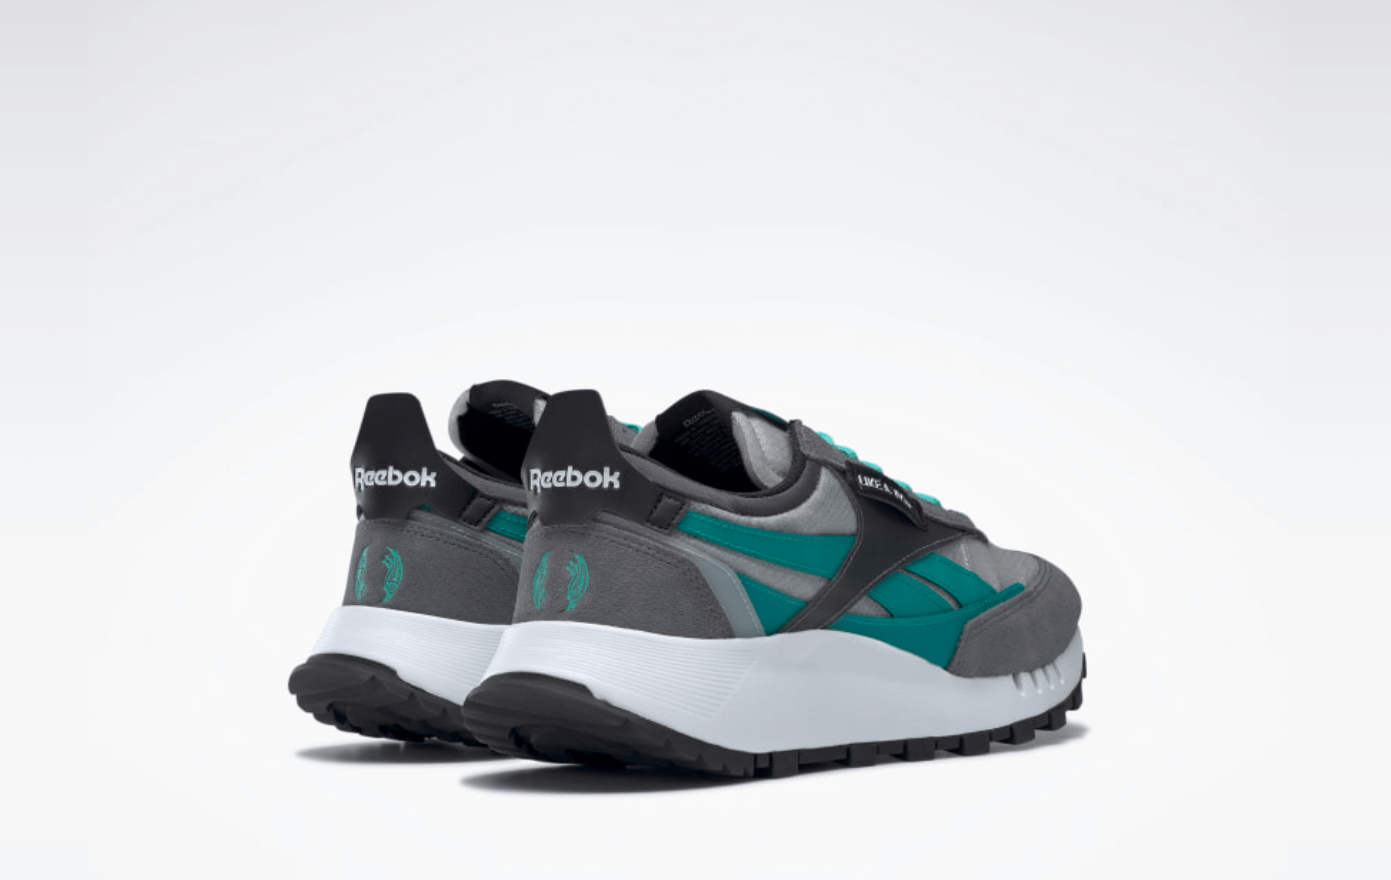 Reebok CL Legacy Assassin's Creed Valhalla 2020